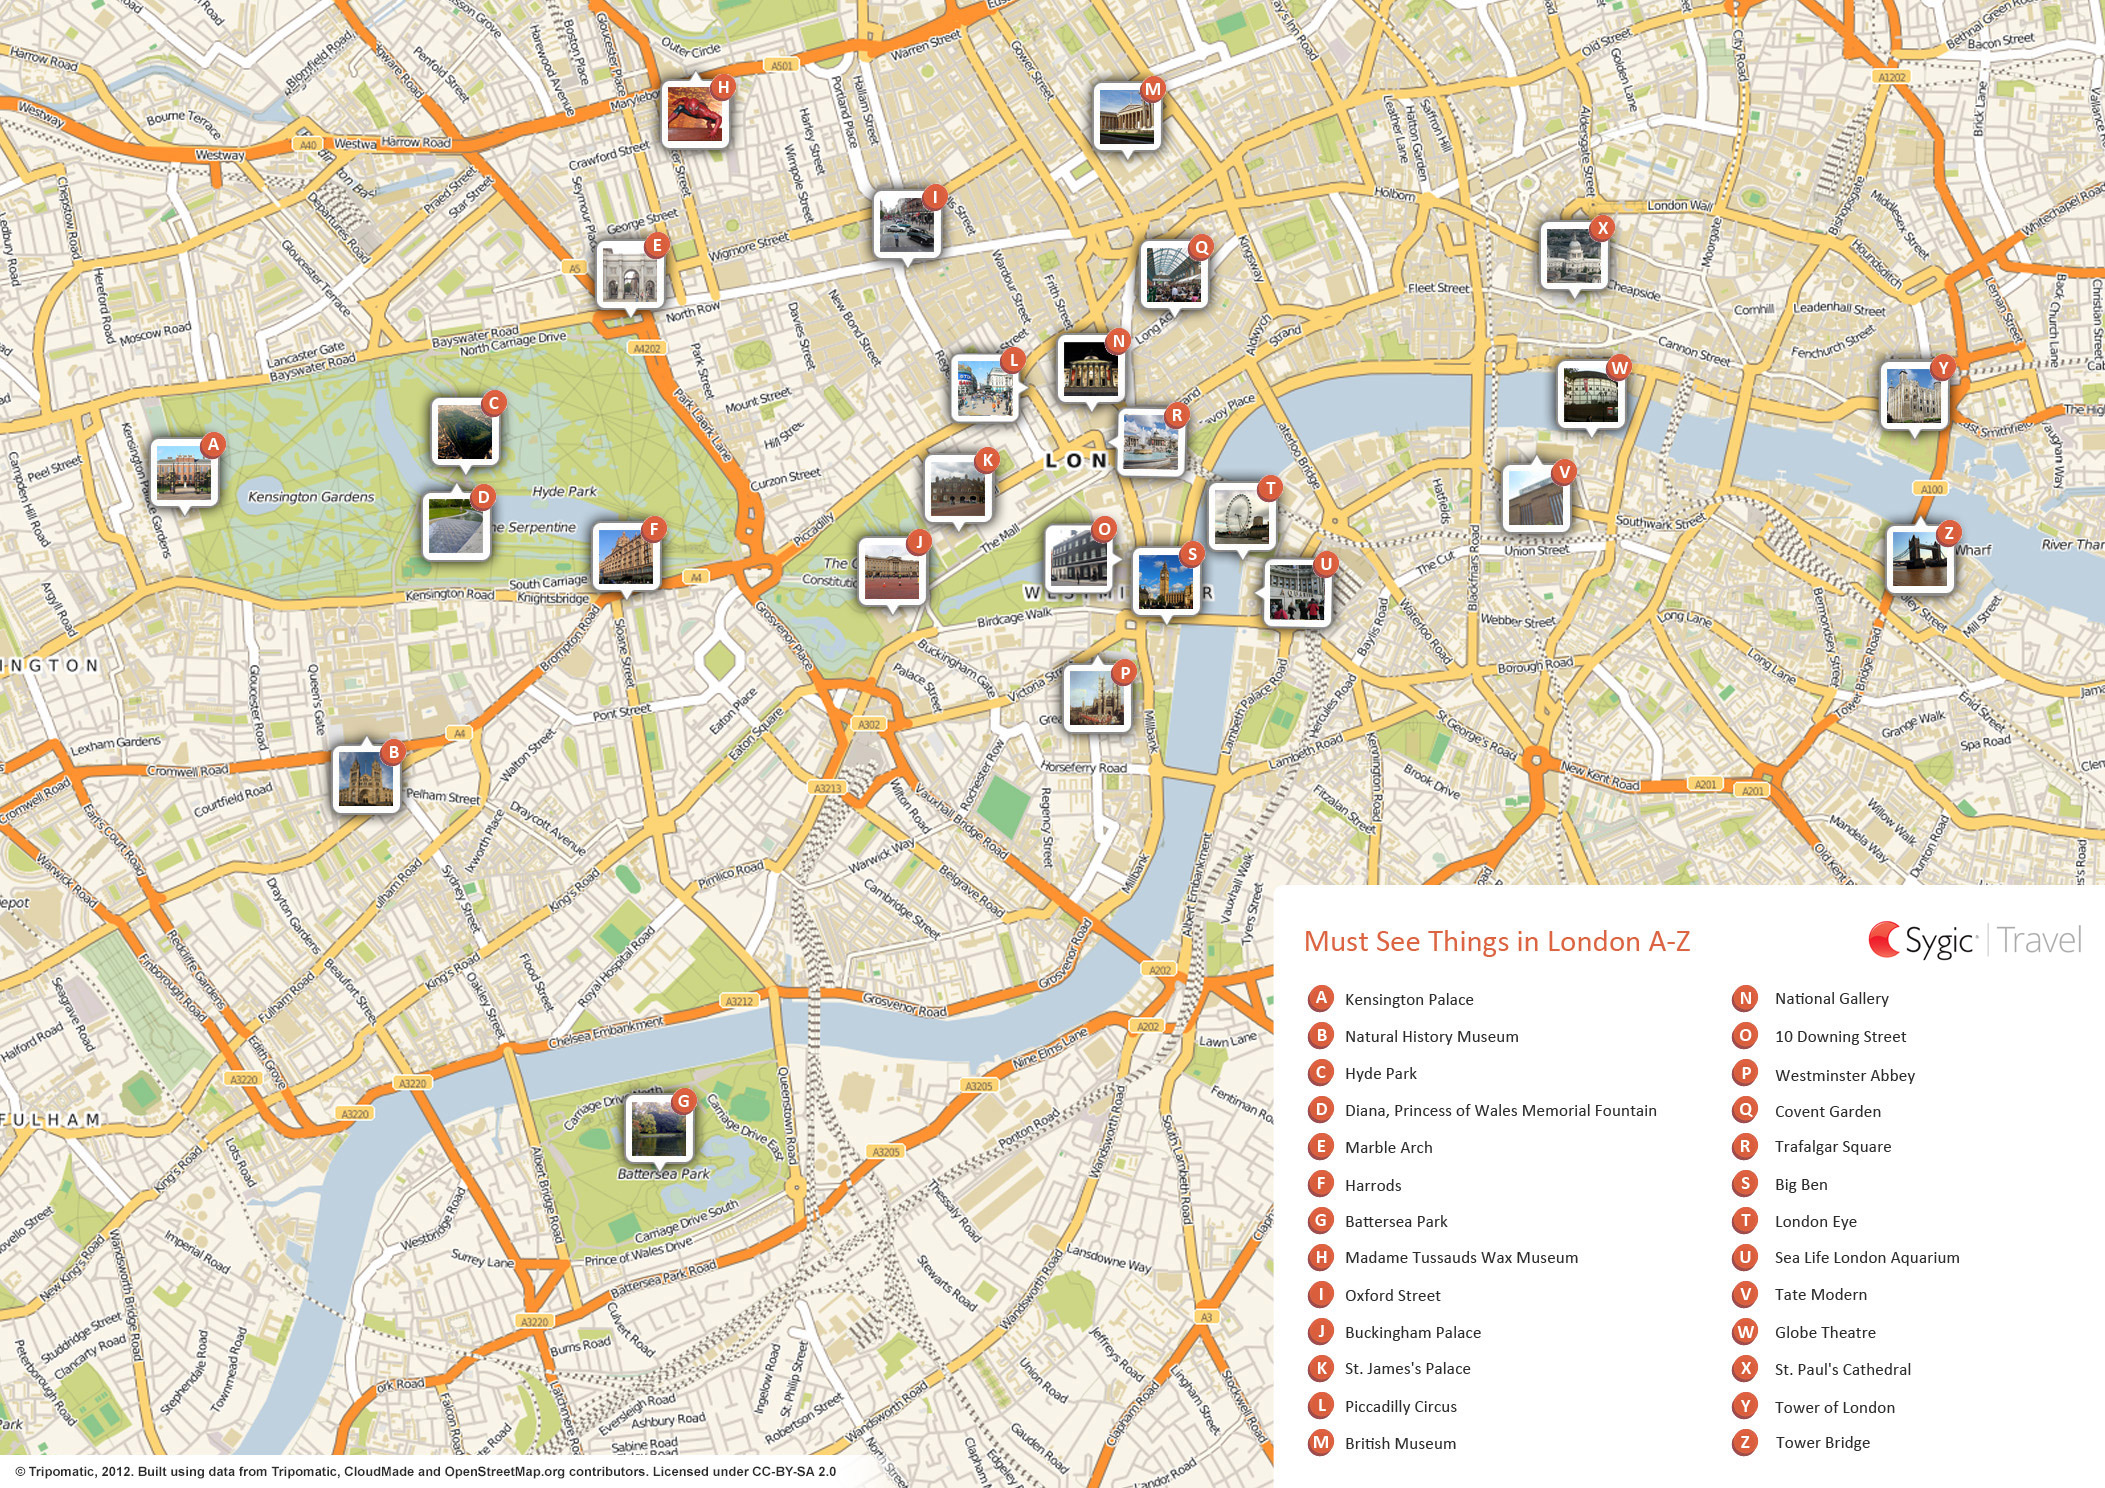 London Printable Tourist Map – Map Of Rome Showing Tourist Attractions